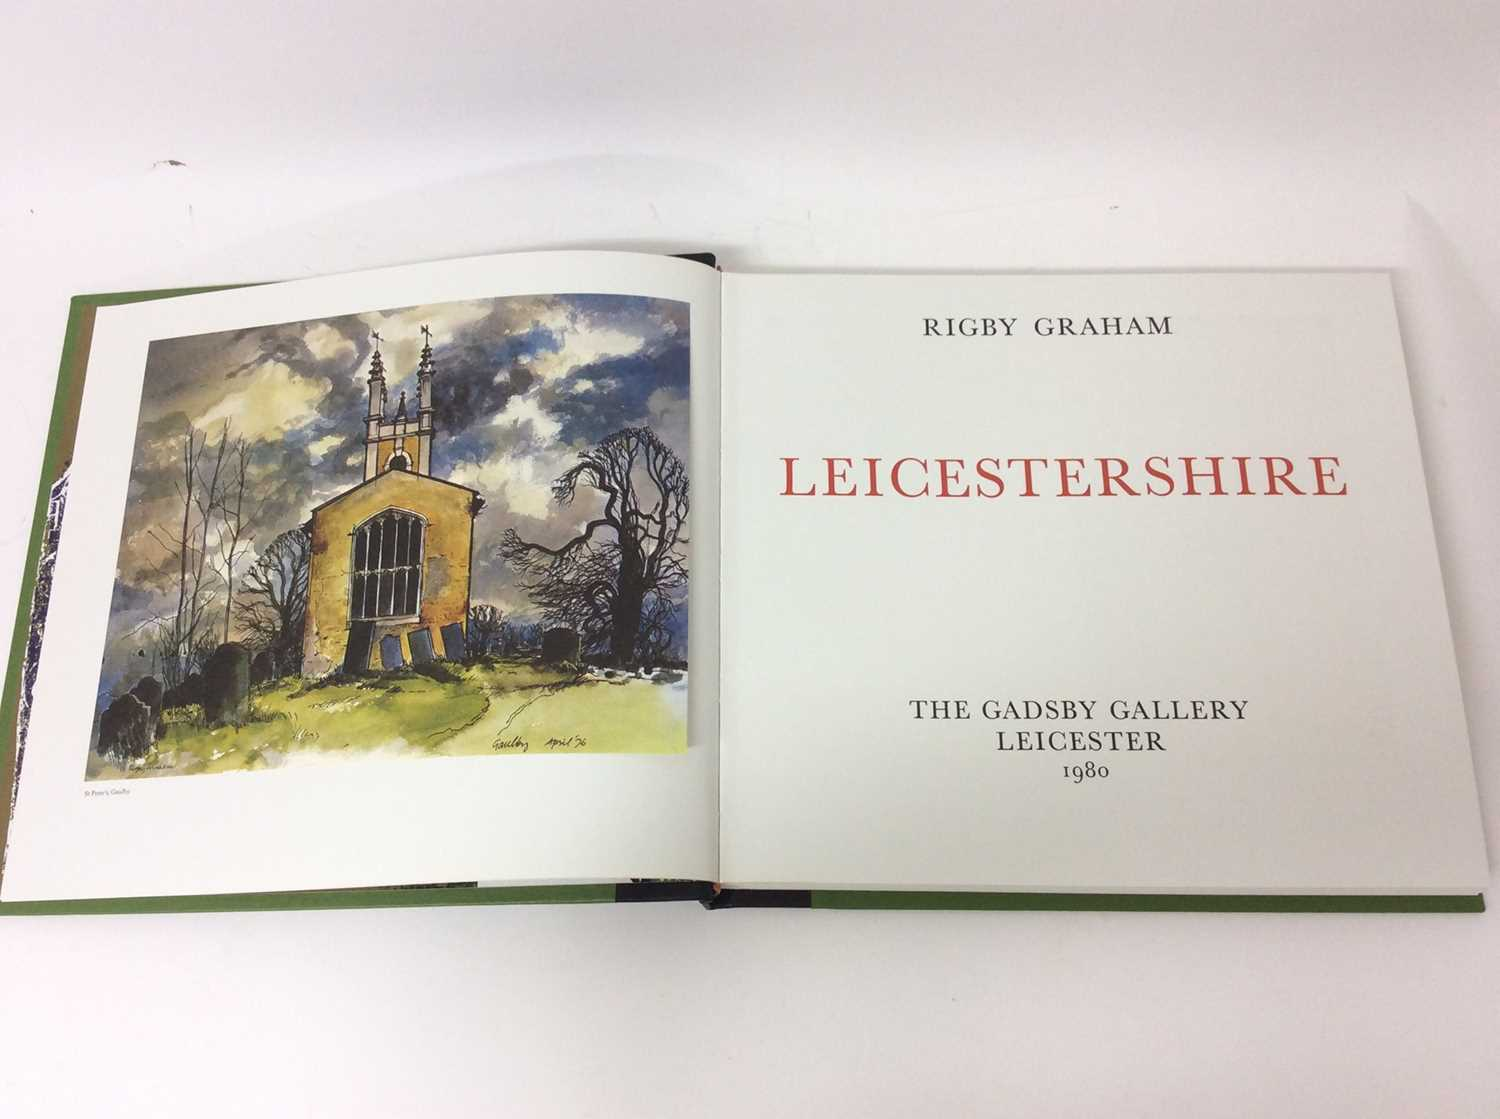 Rigby Graham, Leicestershire, Sycamore Press / Gadsby Gallery, Leicester 1980, folio book in slip co - Image 4 of 10